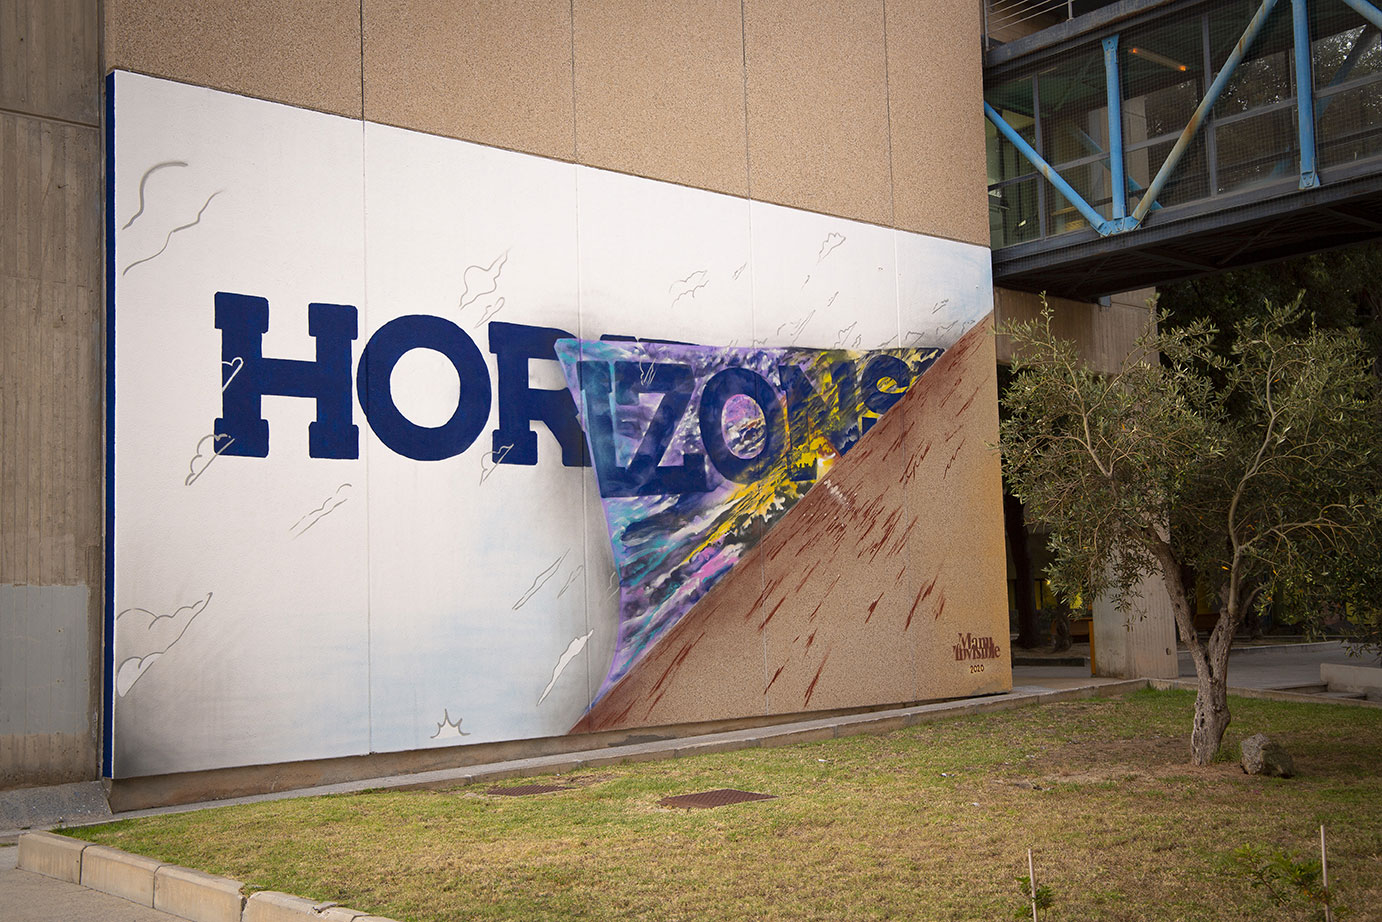 ''Horizons'' Spray and quartz paint on wall 12 x 6 m University City Monserrato 2020